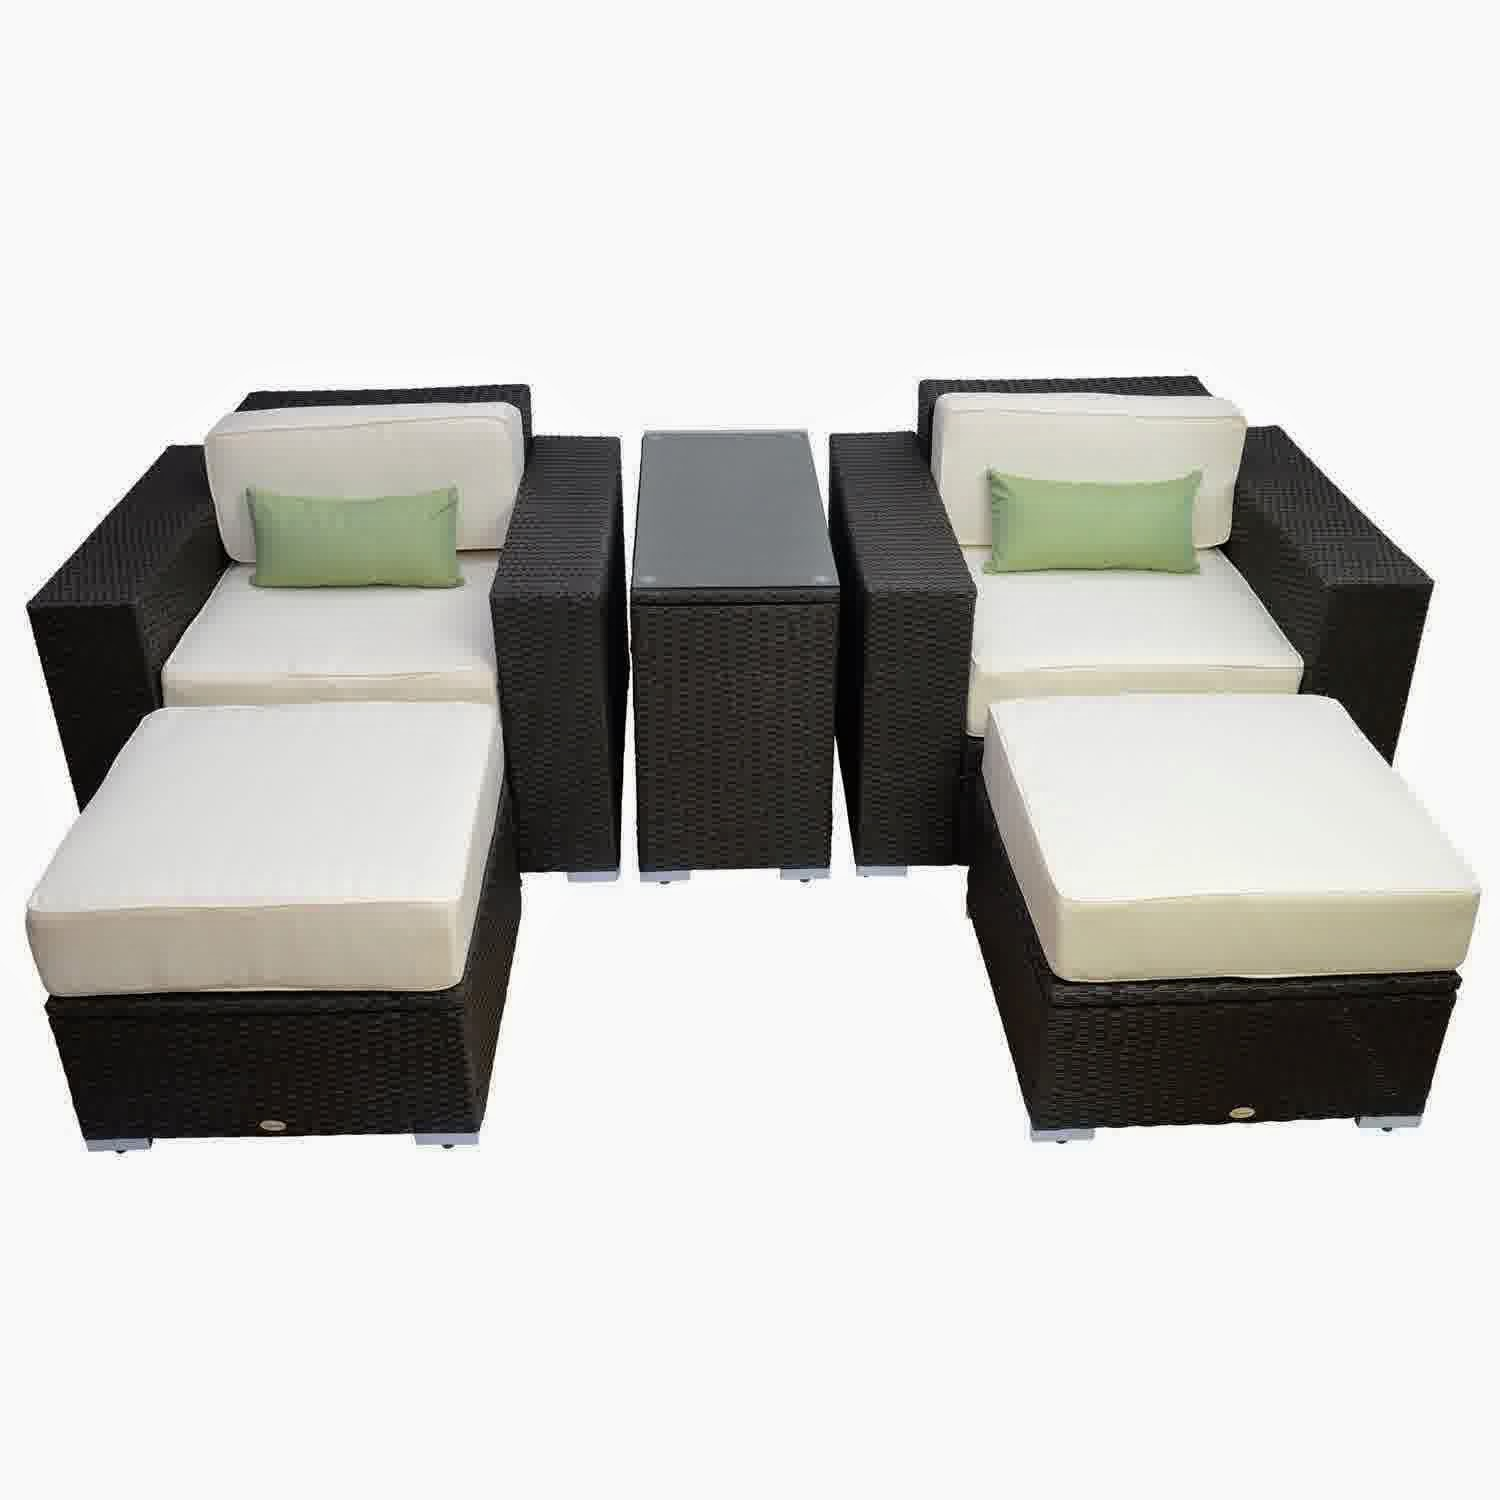 gartenmobel set rund. Black Bedroom Furniture Sets. Home Design Ideas